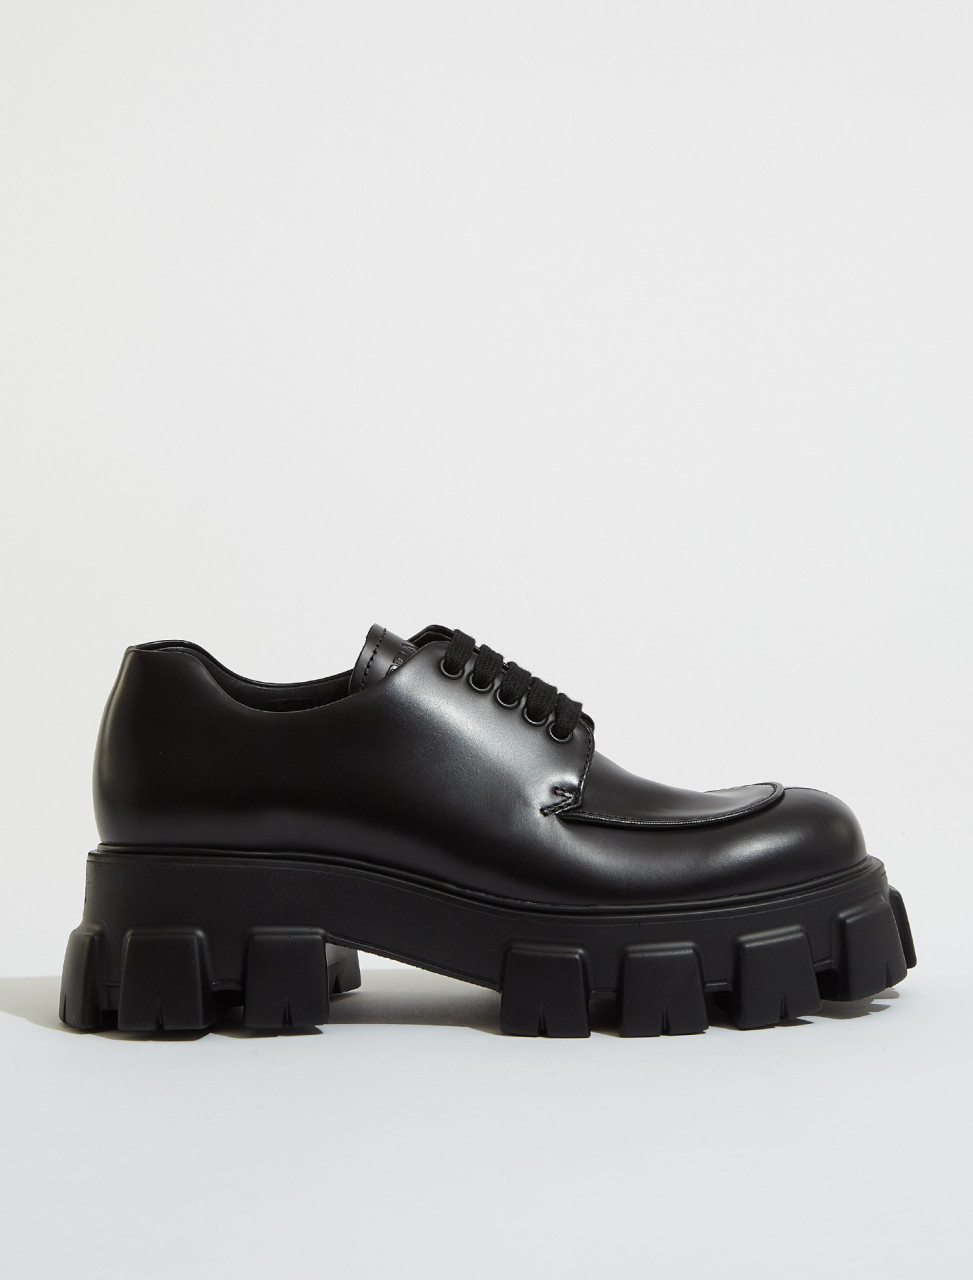 2EE356_B4L_F0002 PRADA MONOLITH BRUSHED LEATHER LACE UP SHOES IN BLACK